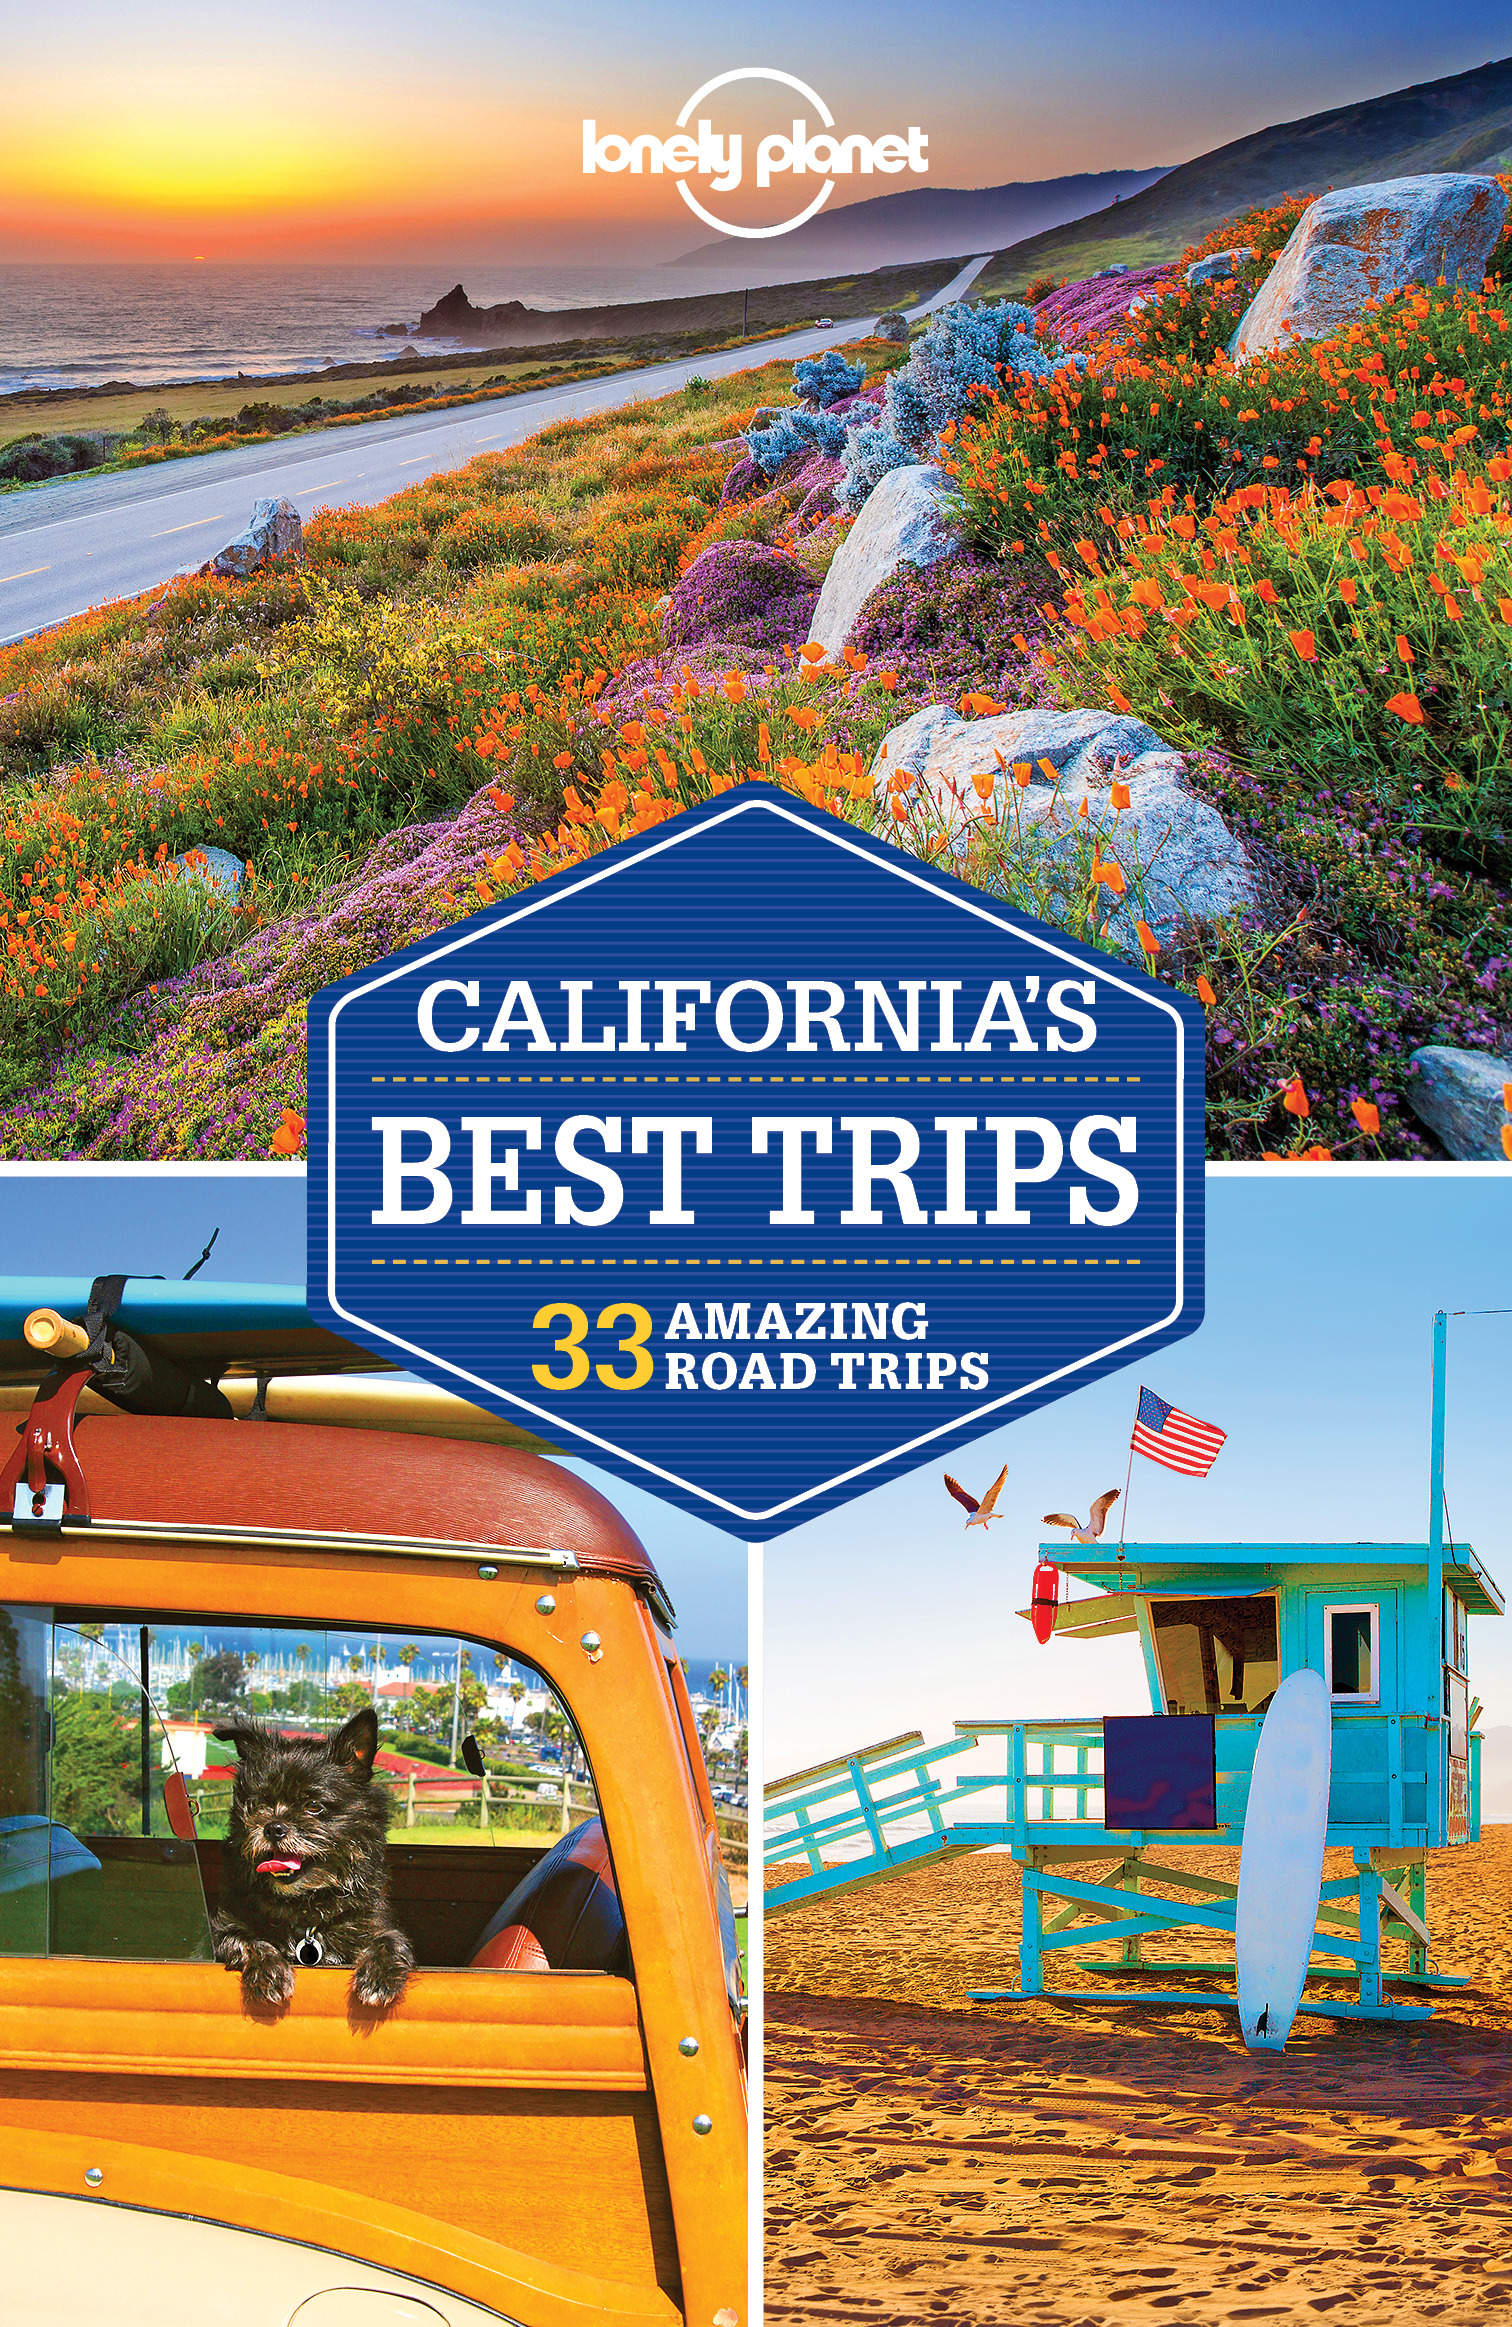 Benson, Sara - Lonely Planet California's Best Trips, ebook